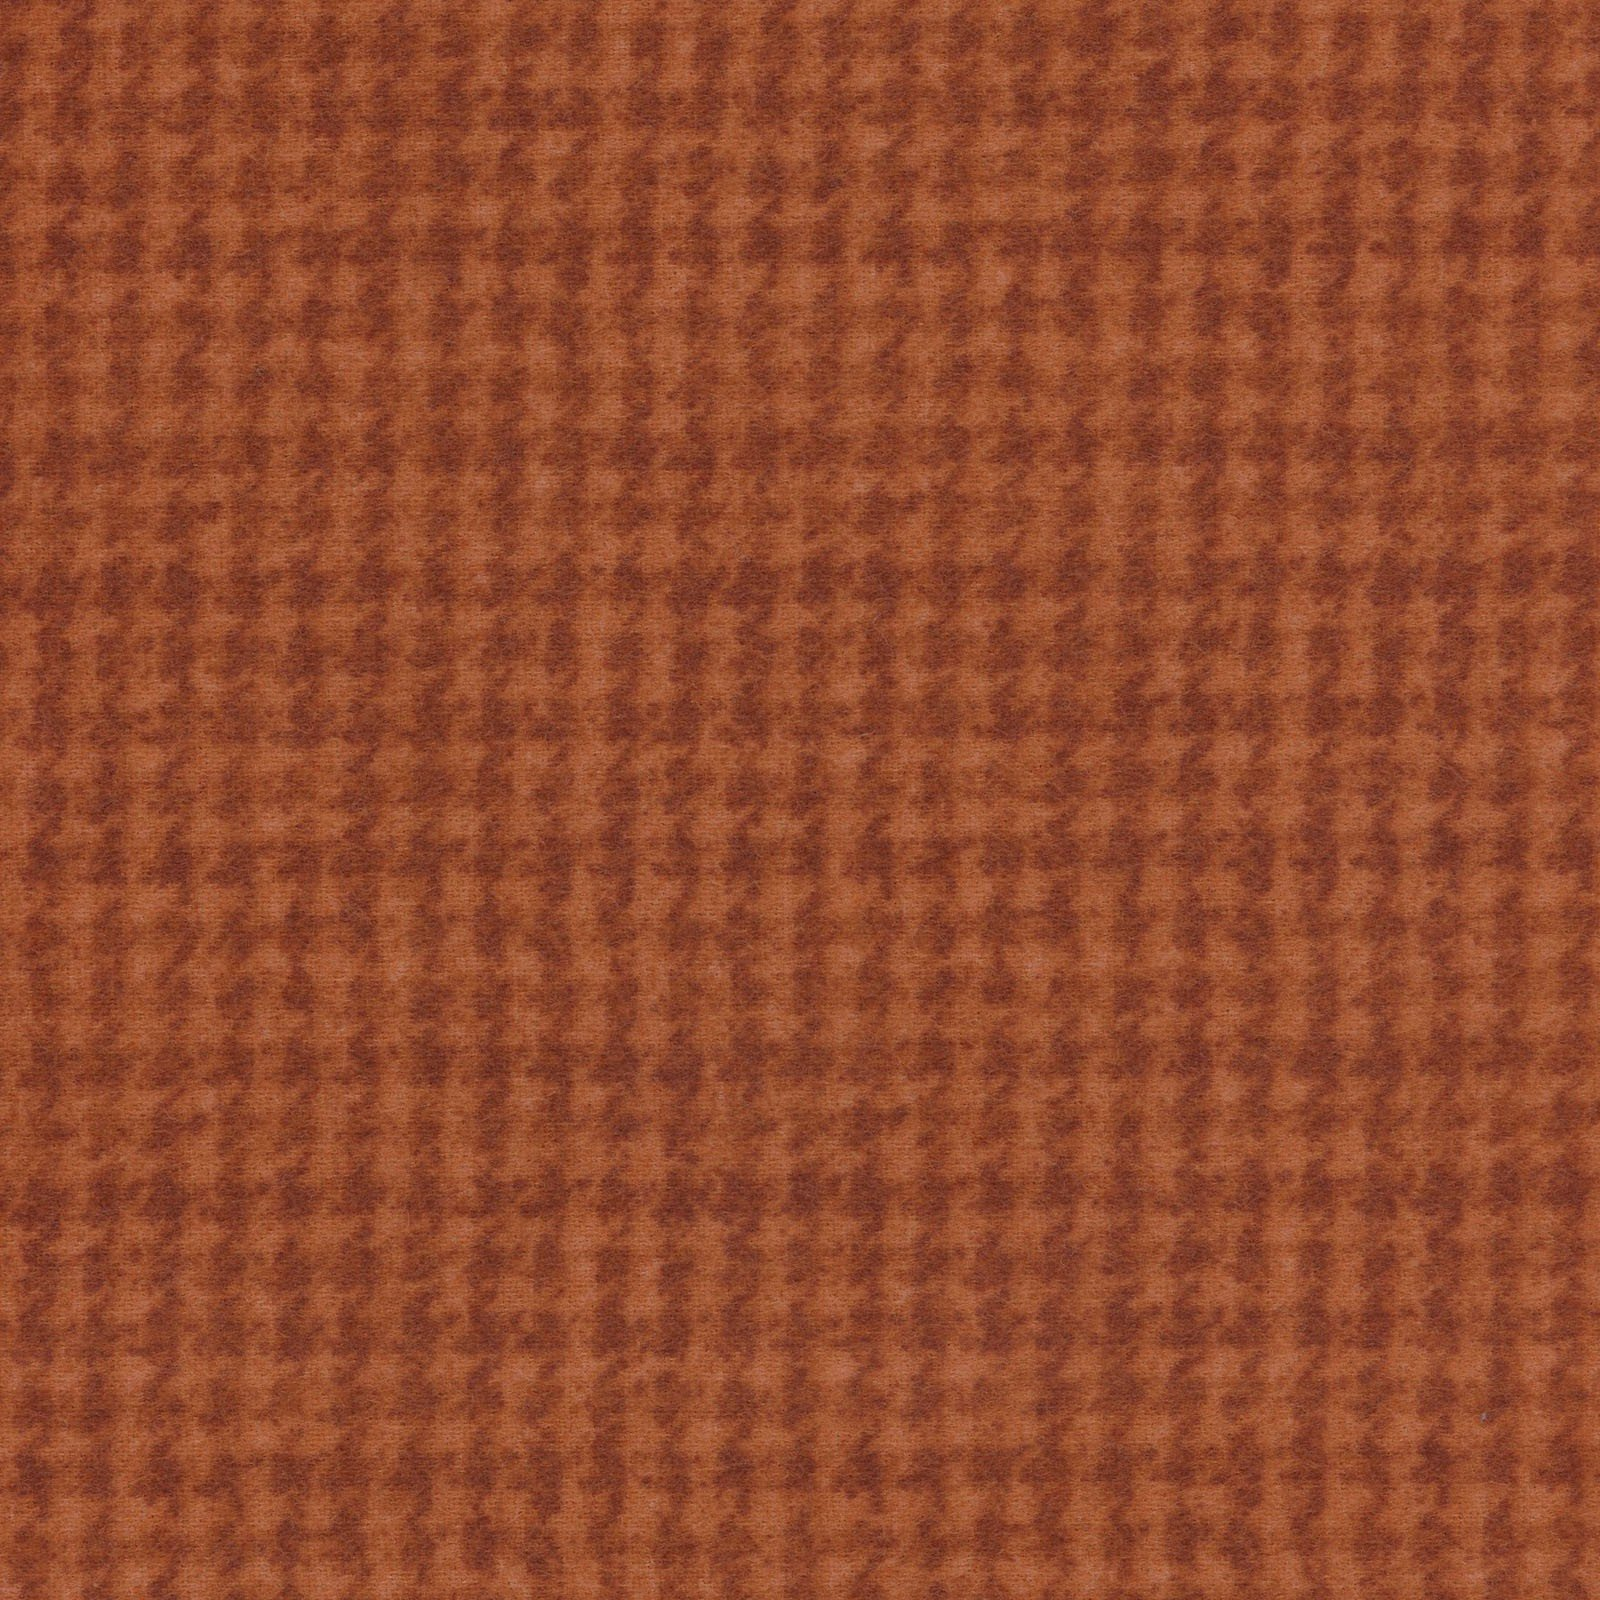 Woolies Flannel Houndstooth Orange (MASF18503-O)